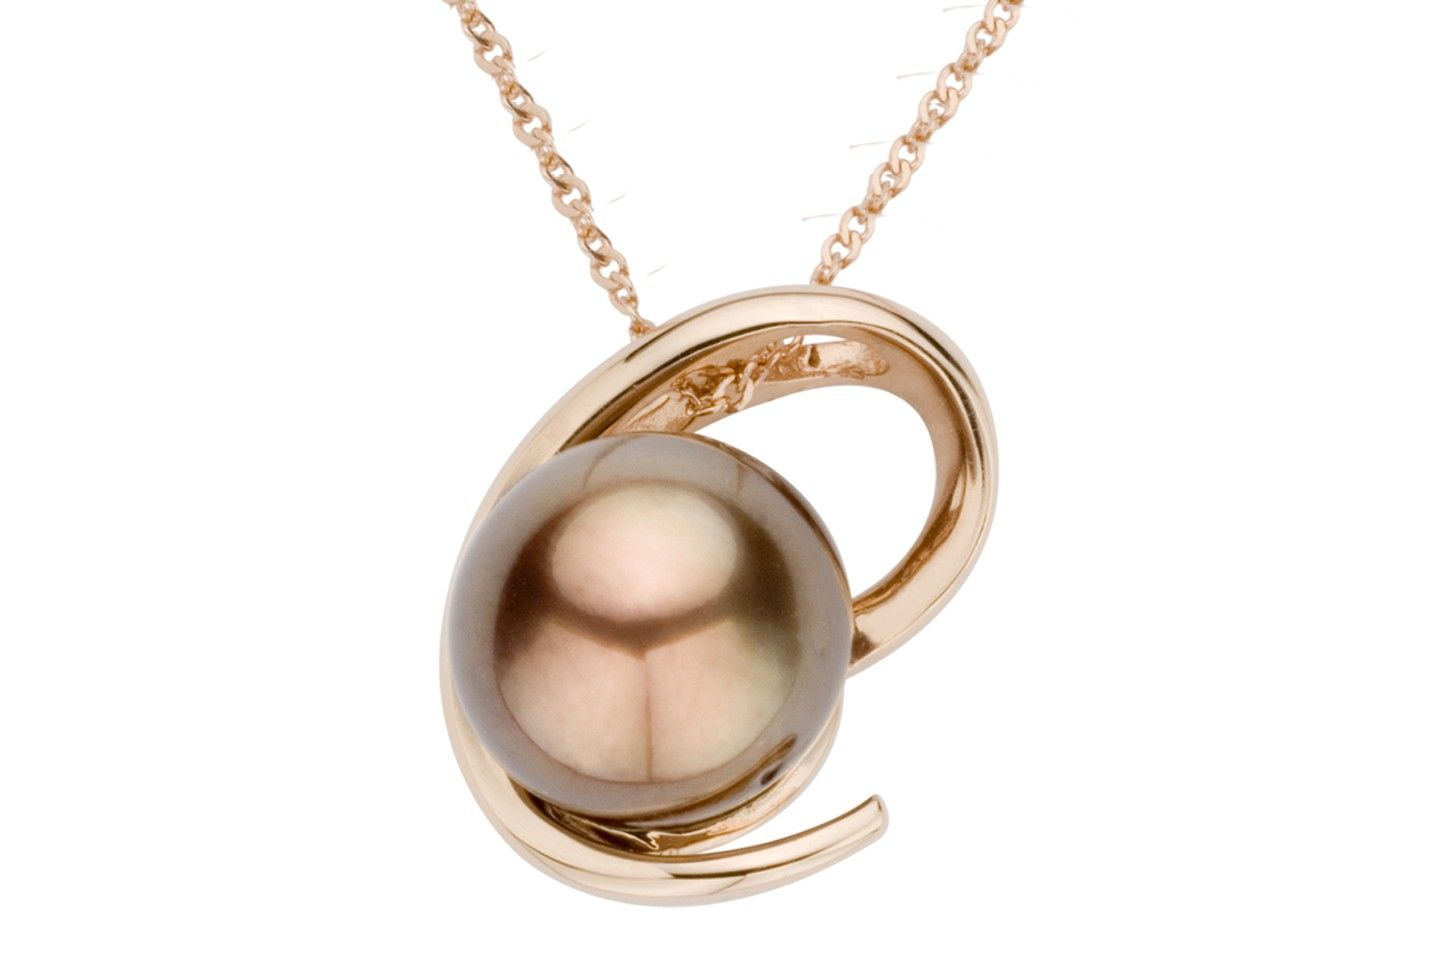 This simply elegant pendant set in k pink gold shows off the